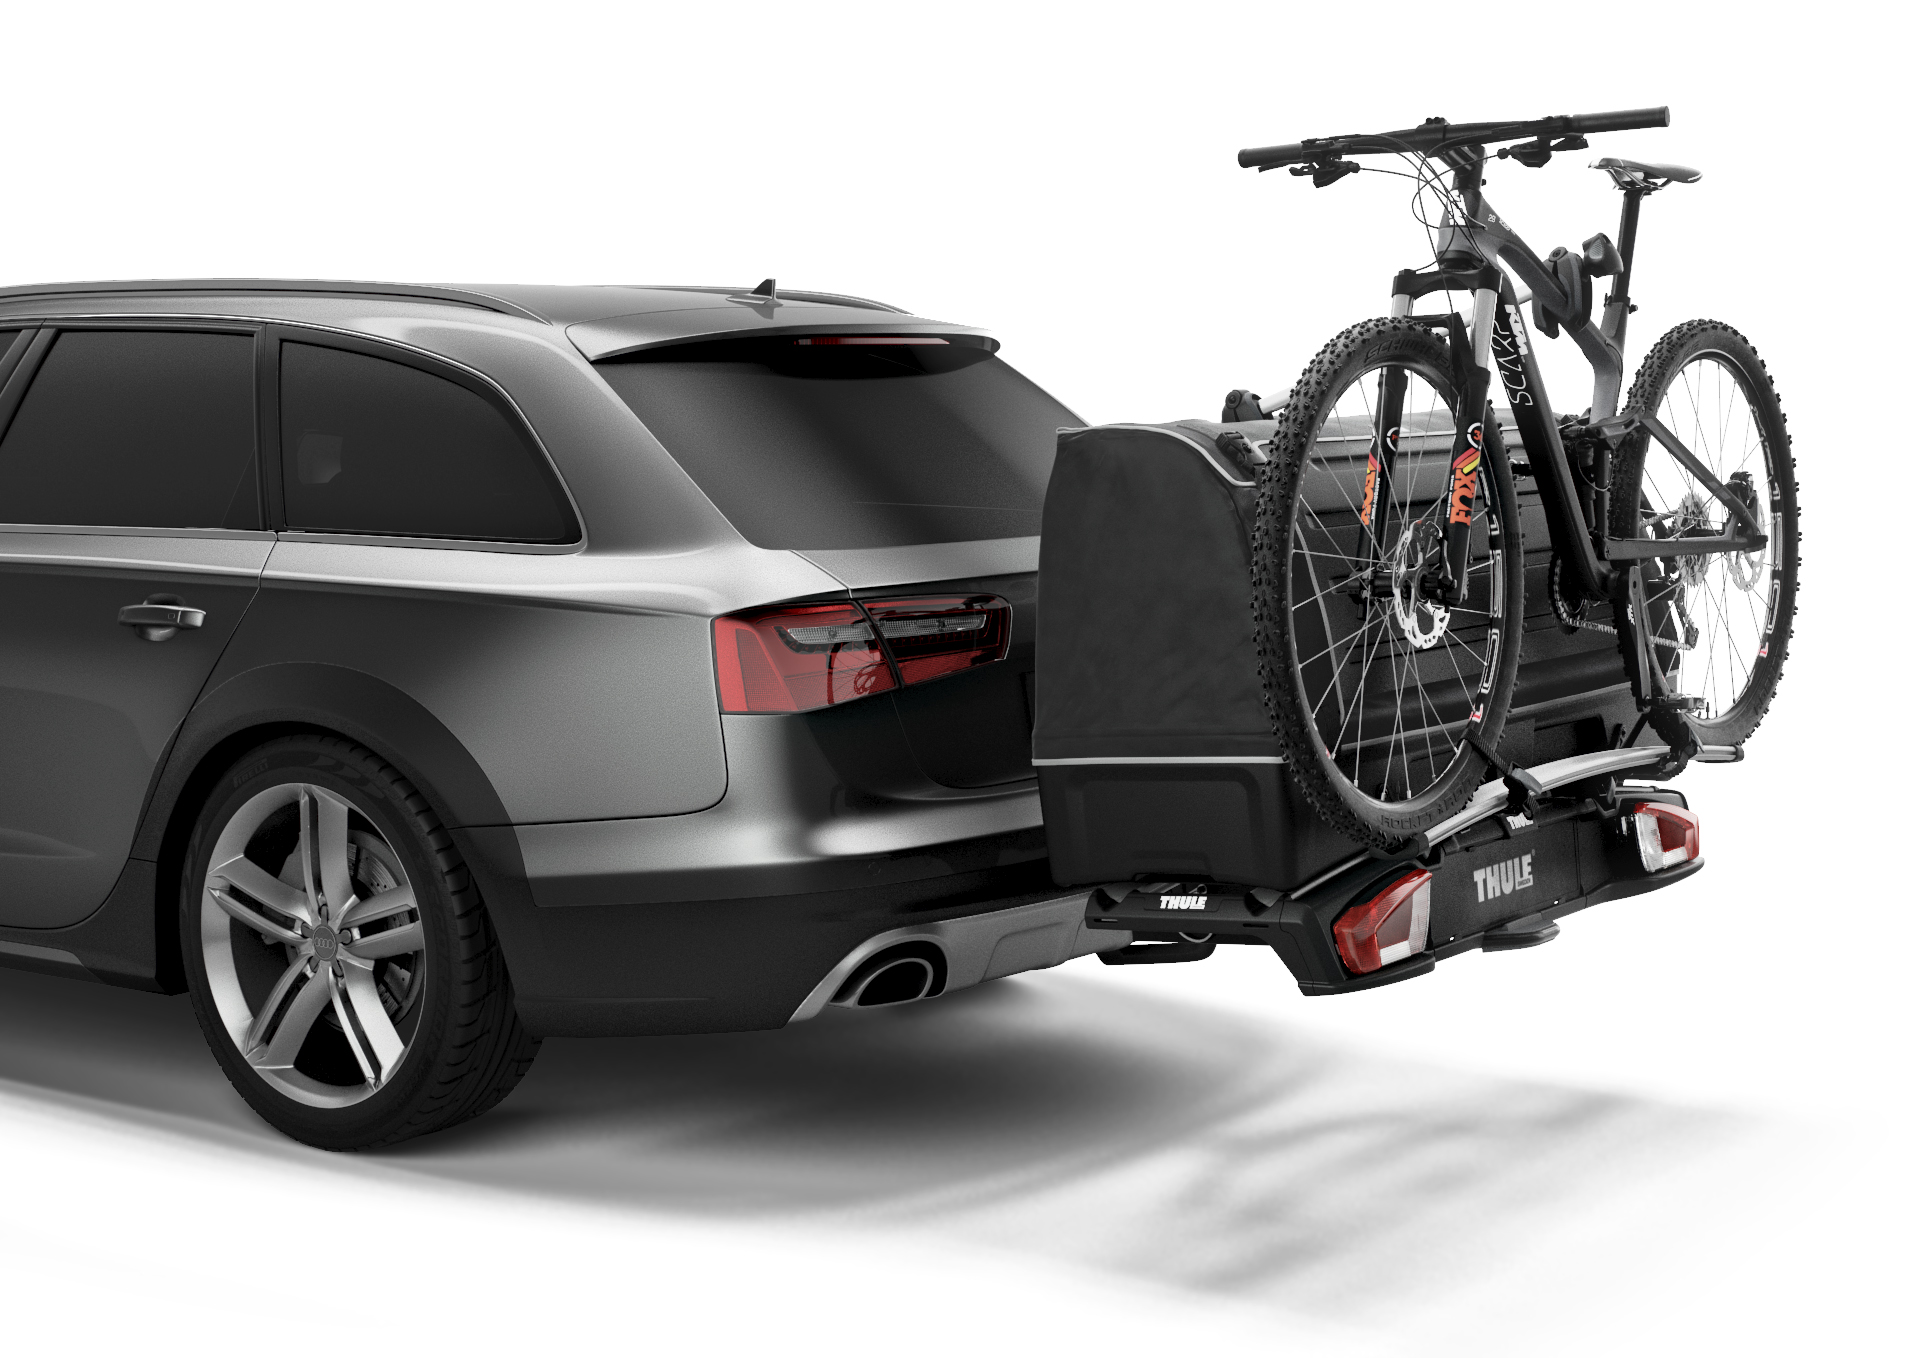 thule backspace xt cargo box to fit onto the velospace xt carbox. Black Bedroom Furniture Sets. Home Design Ideas